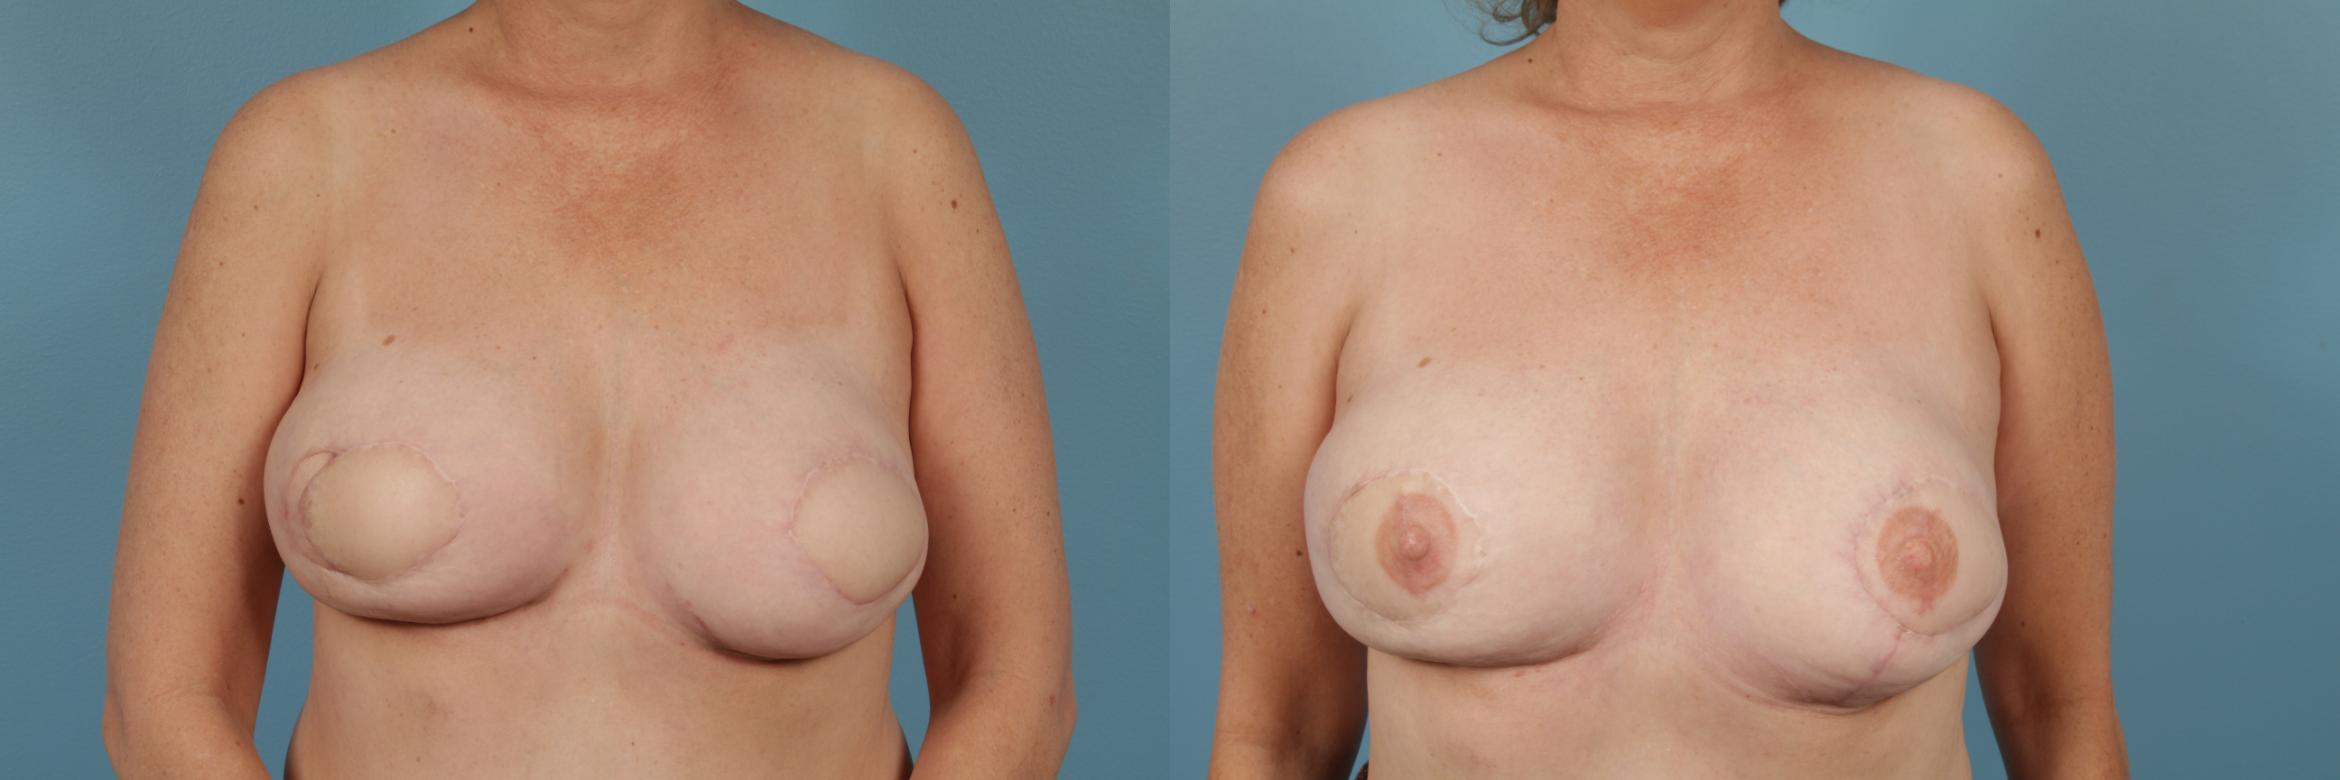 Breast Reconstruction Case 255 Before & After View #1 | Chicago, IL | TLKM Plastic Surgery